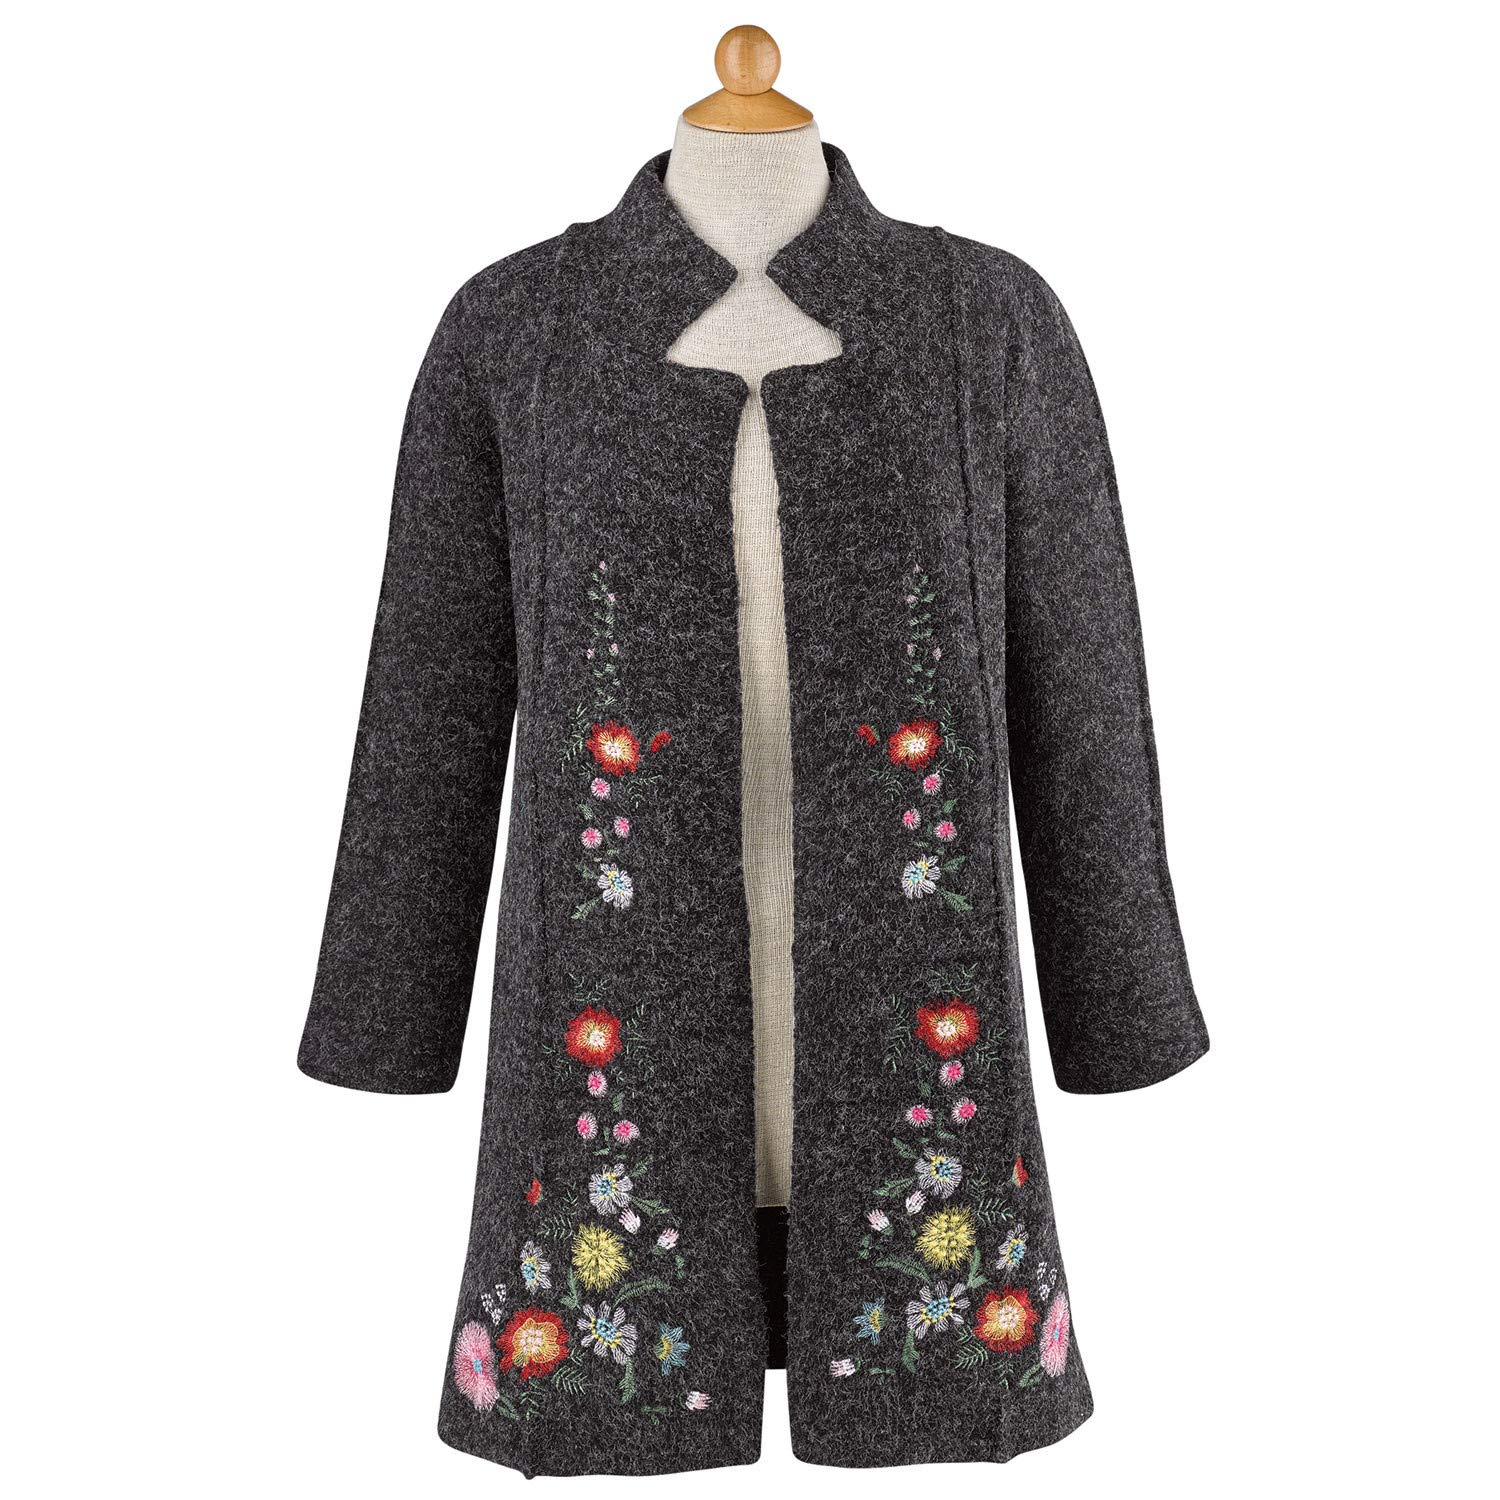 Rising International Women's Heidi Sweater Coat - Embroidered Floral Jacket